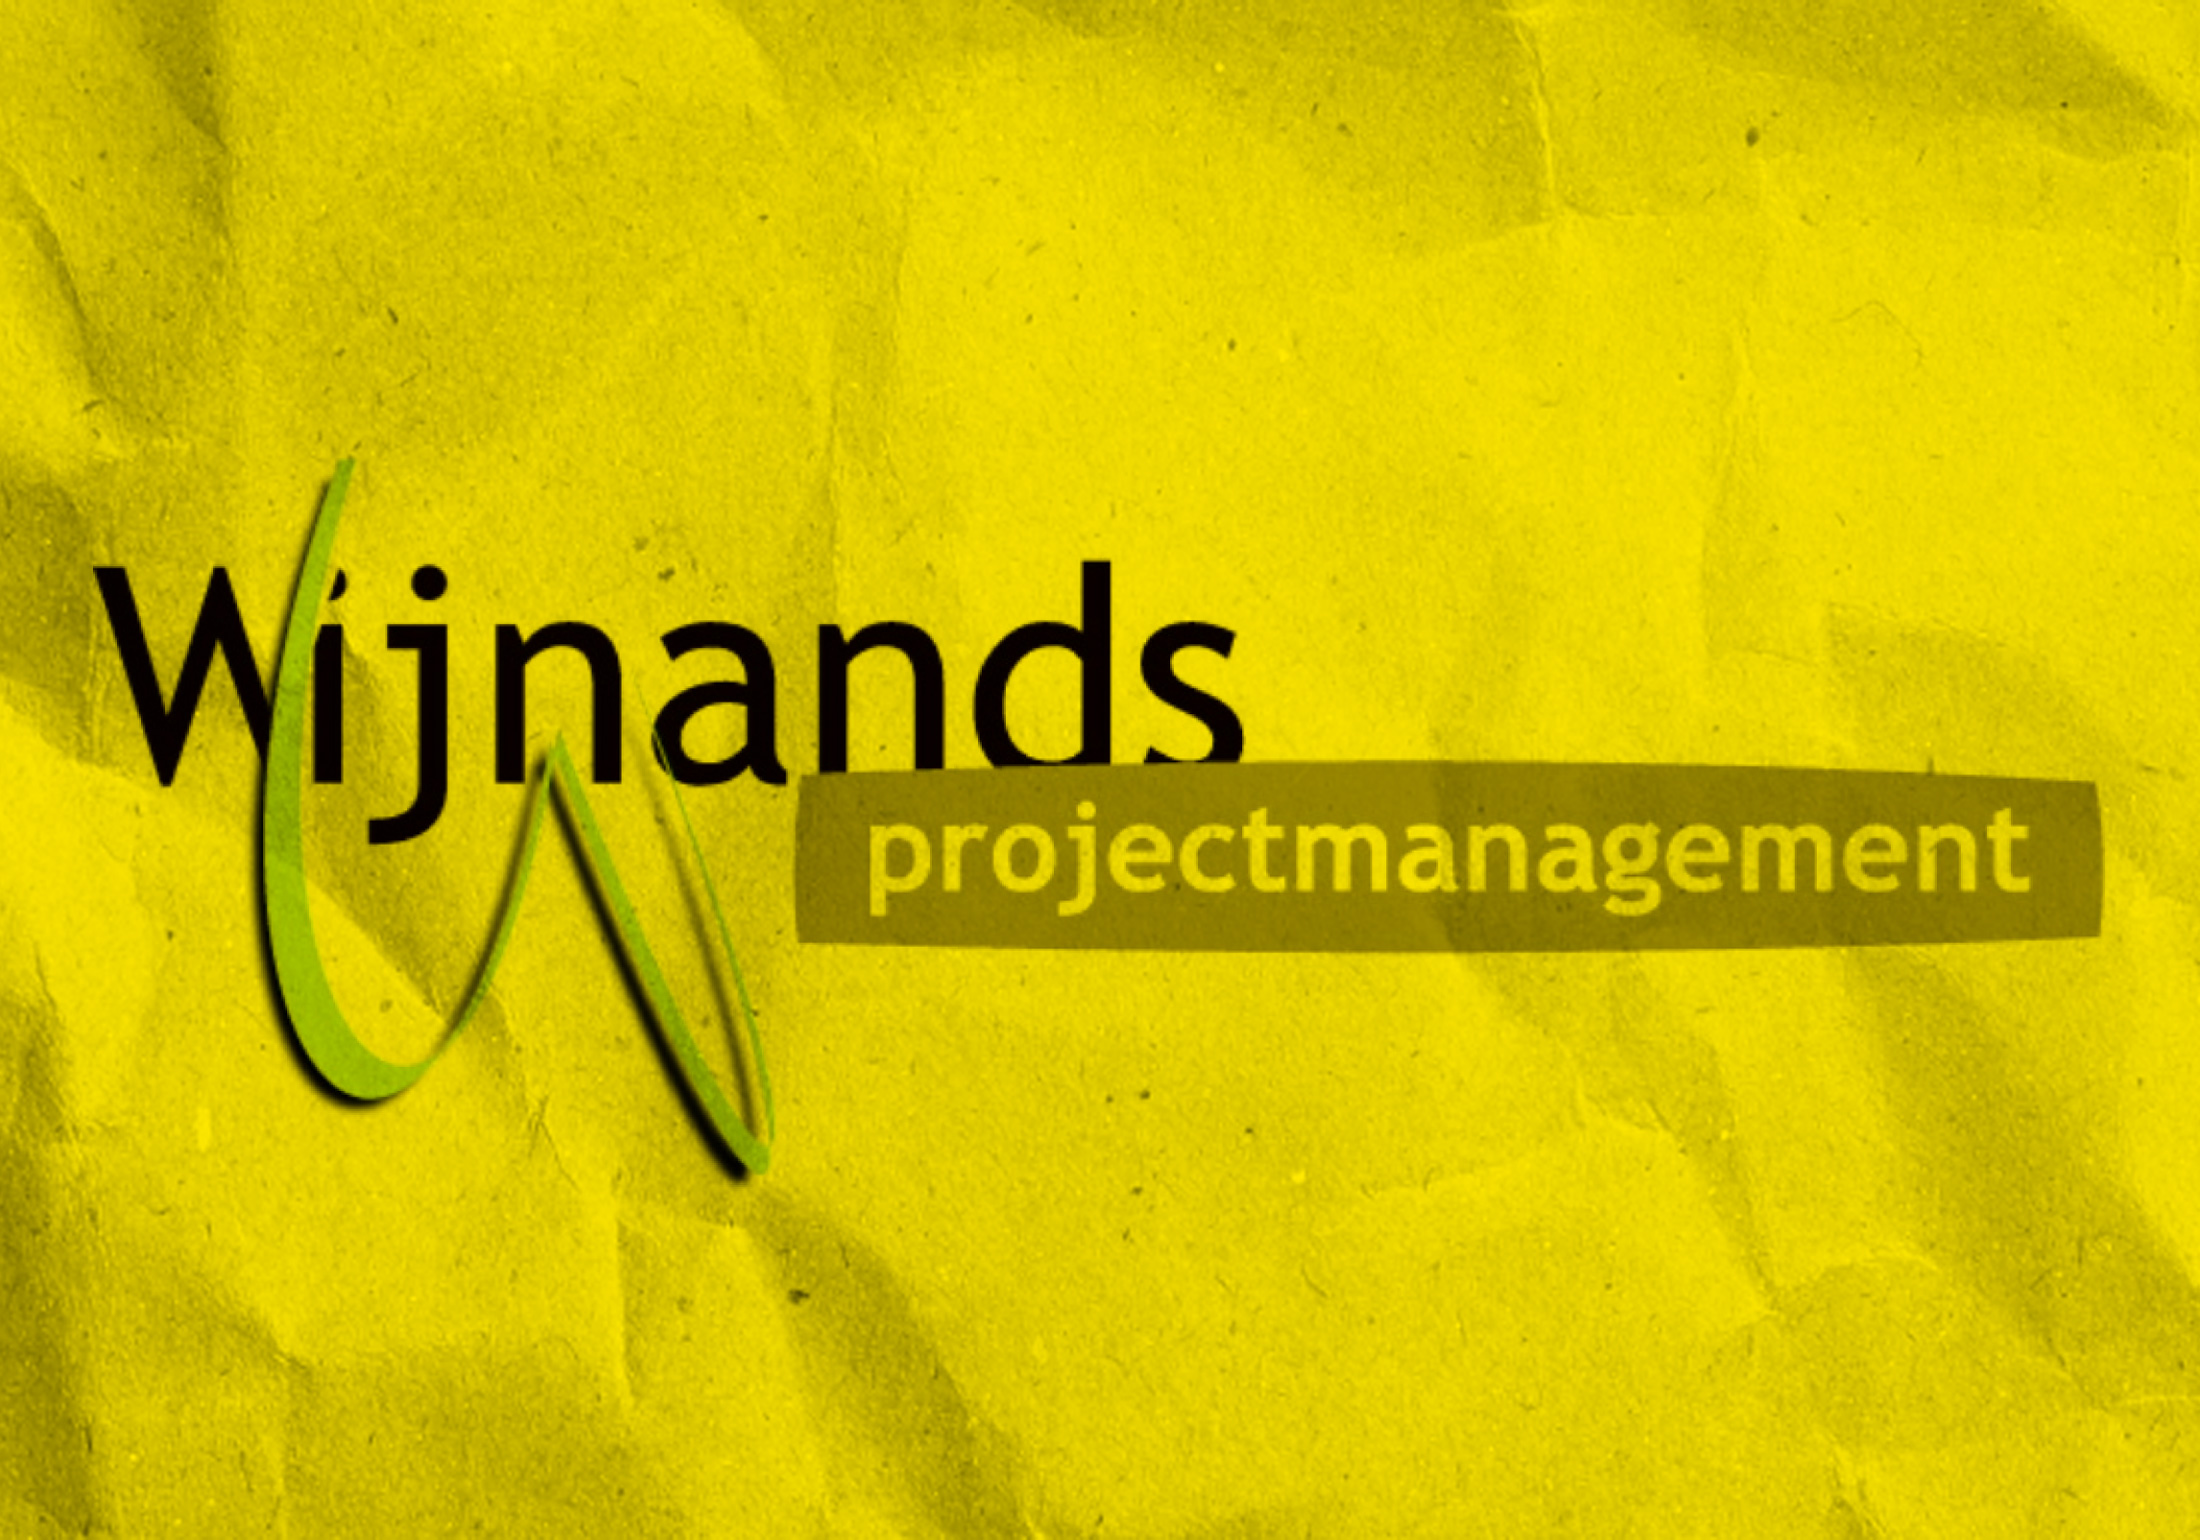 Wijnands Projectmanagement